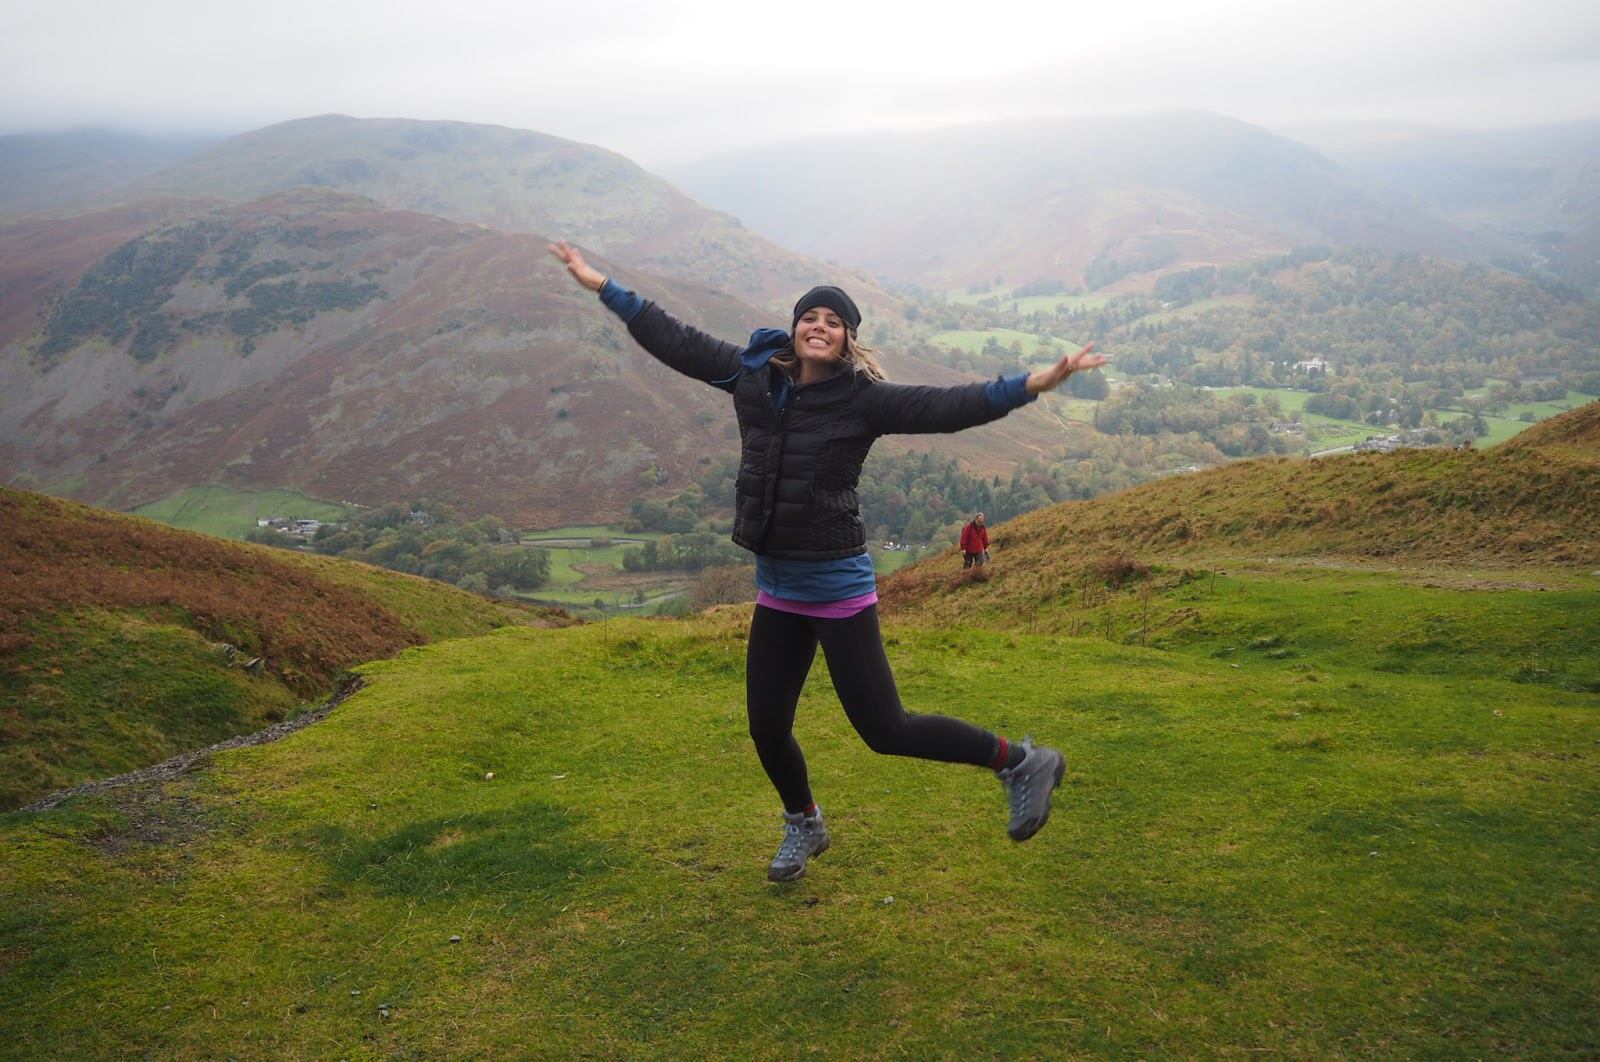 #WMGT, #WMGlobalTravellers, #LakeDistrict, #Ullswater, #Windermere, #Ambleside, #BritishCountryside, #theLifeofaSocialButterfly, #WheresMollie, #tblogger, #TravelBlogger, #GroupTravel, #Adventure, #Weekend, #SoloTravel, #travel, #VisitEngland, #England, #Cumbria, #Scenic, #GreatBritain, #YHA, #Hostel, #YHAAmbleside